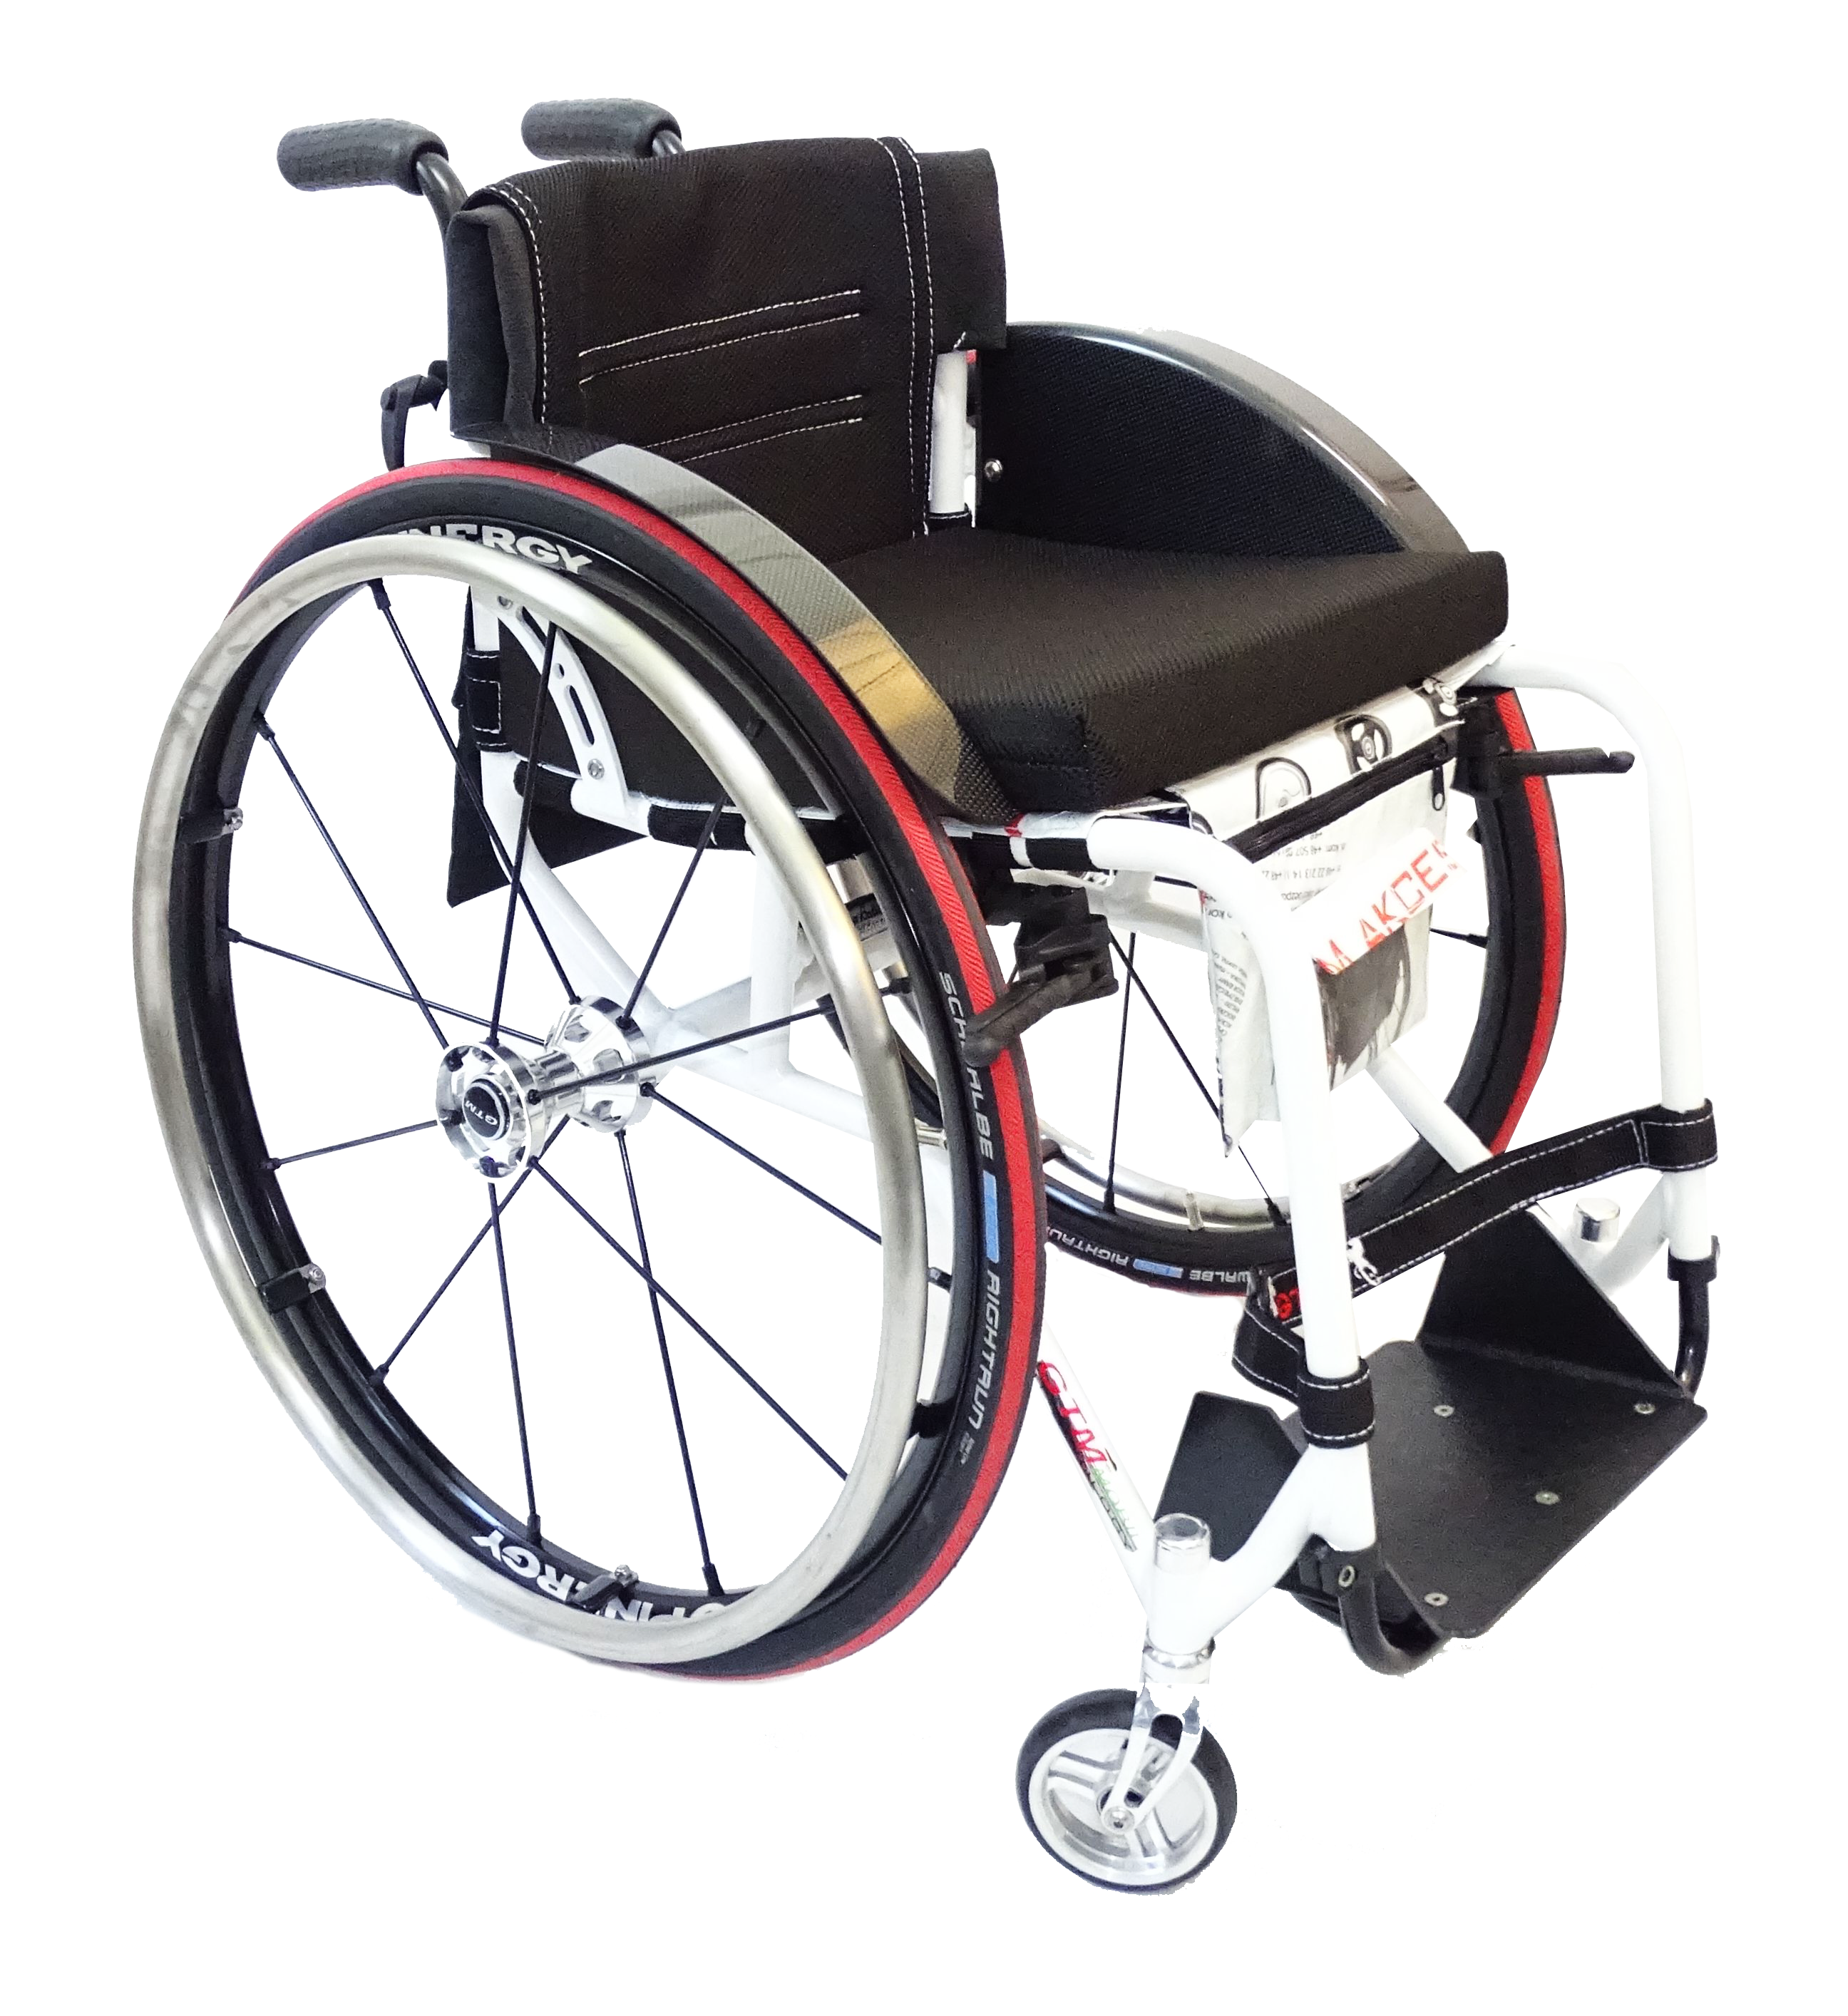 Cyclone are committed to providing the finest solutions for you and believe the GTM Jaguar, an ultra-lightweight and durable, aluminium Wheelchair, is a highly desirable, world class quality wheelchair